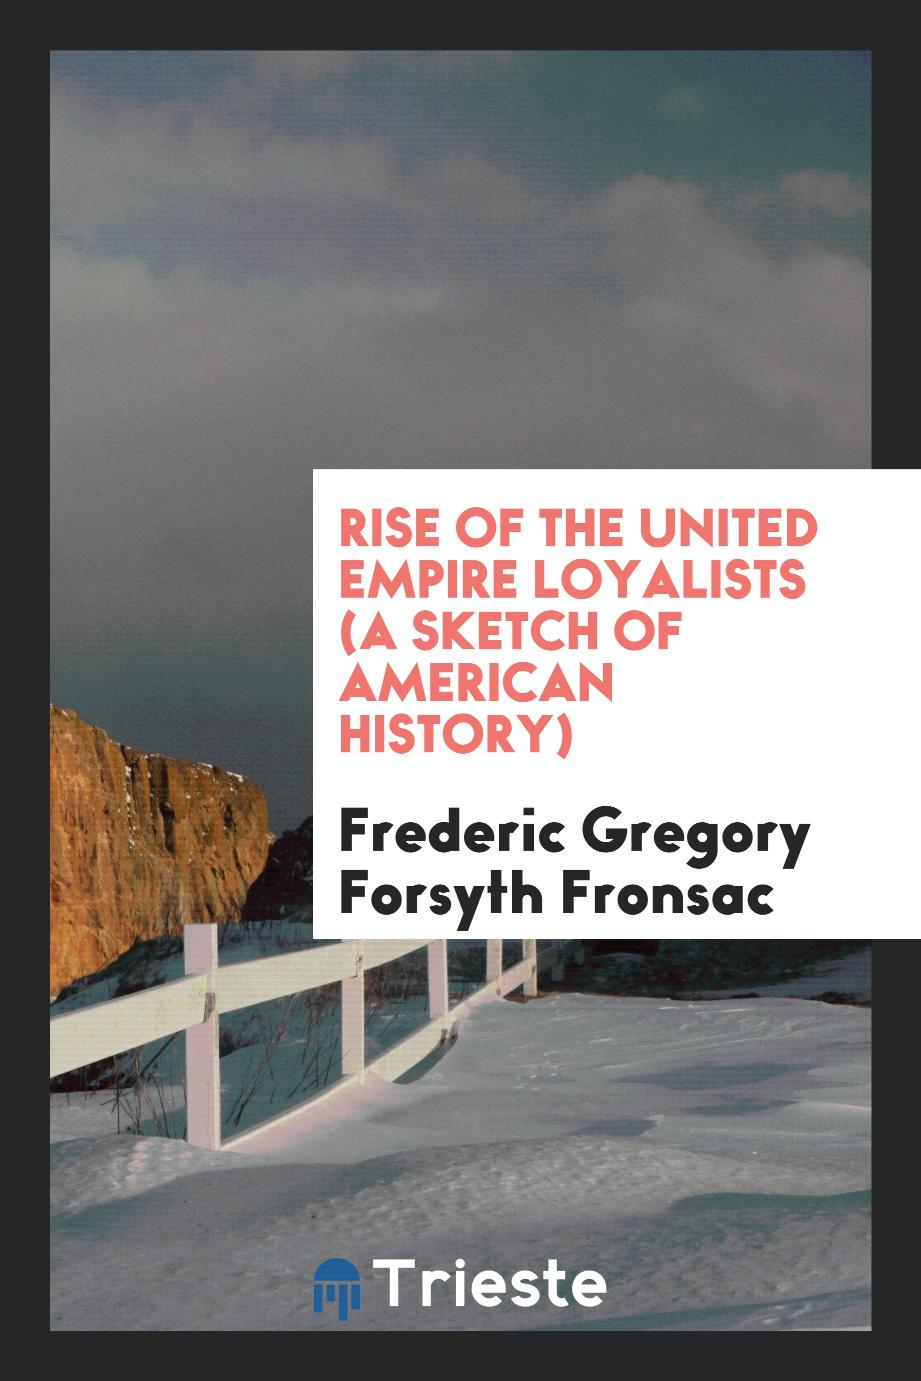 Rise of the United Empire Loyalists (A Sketch of American History)